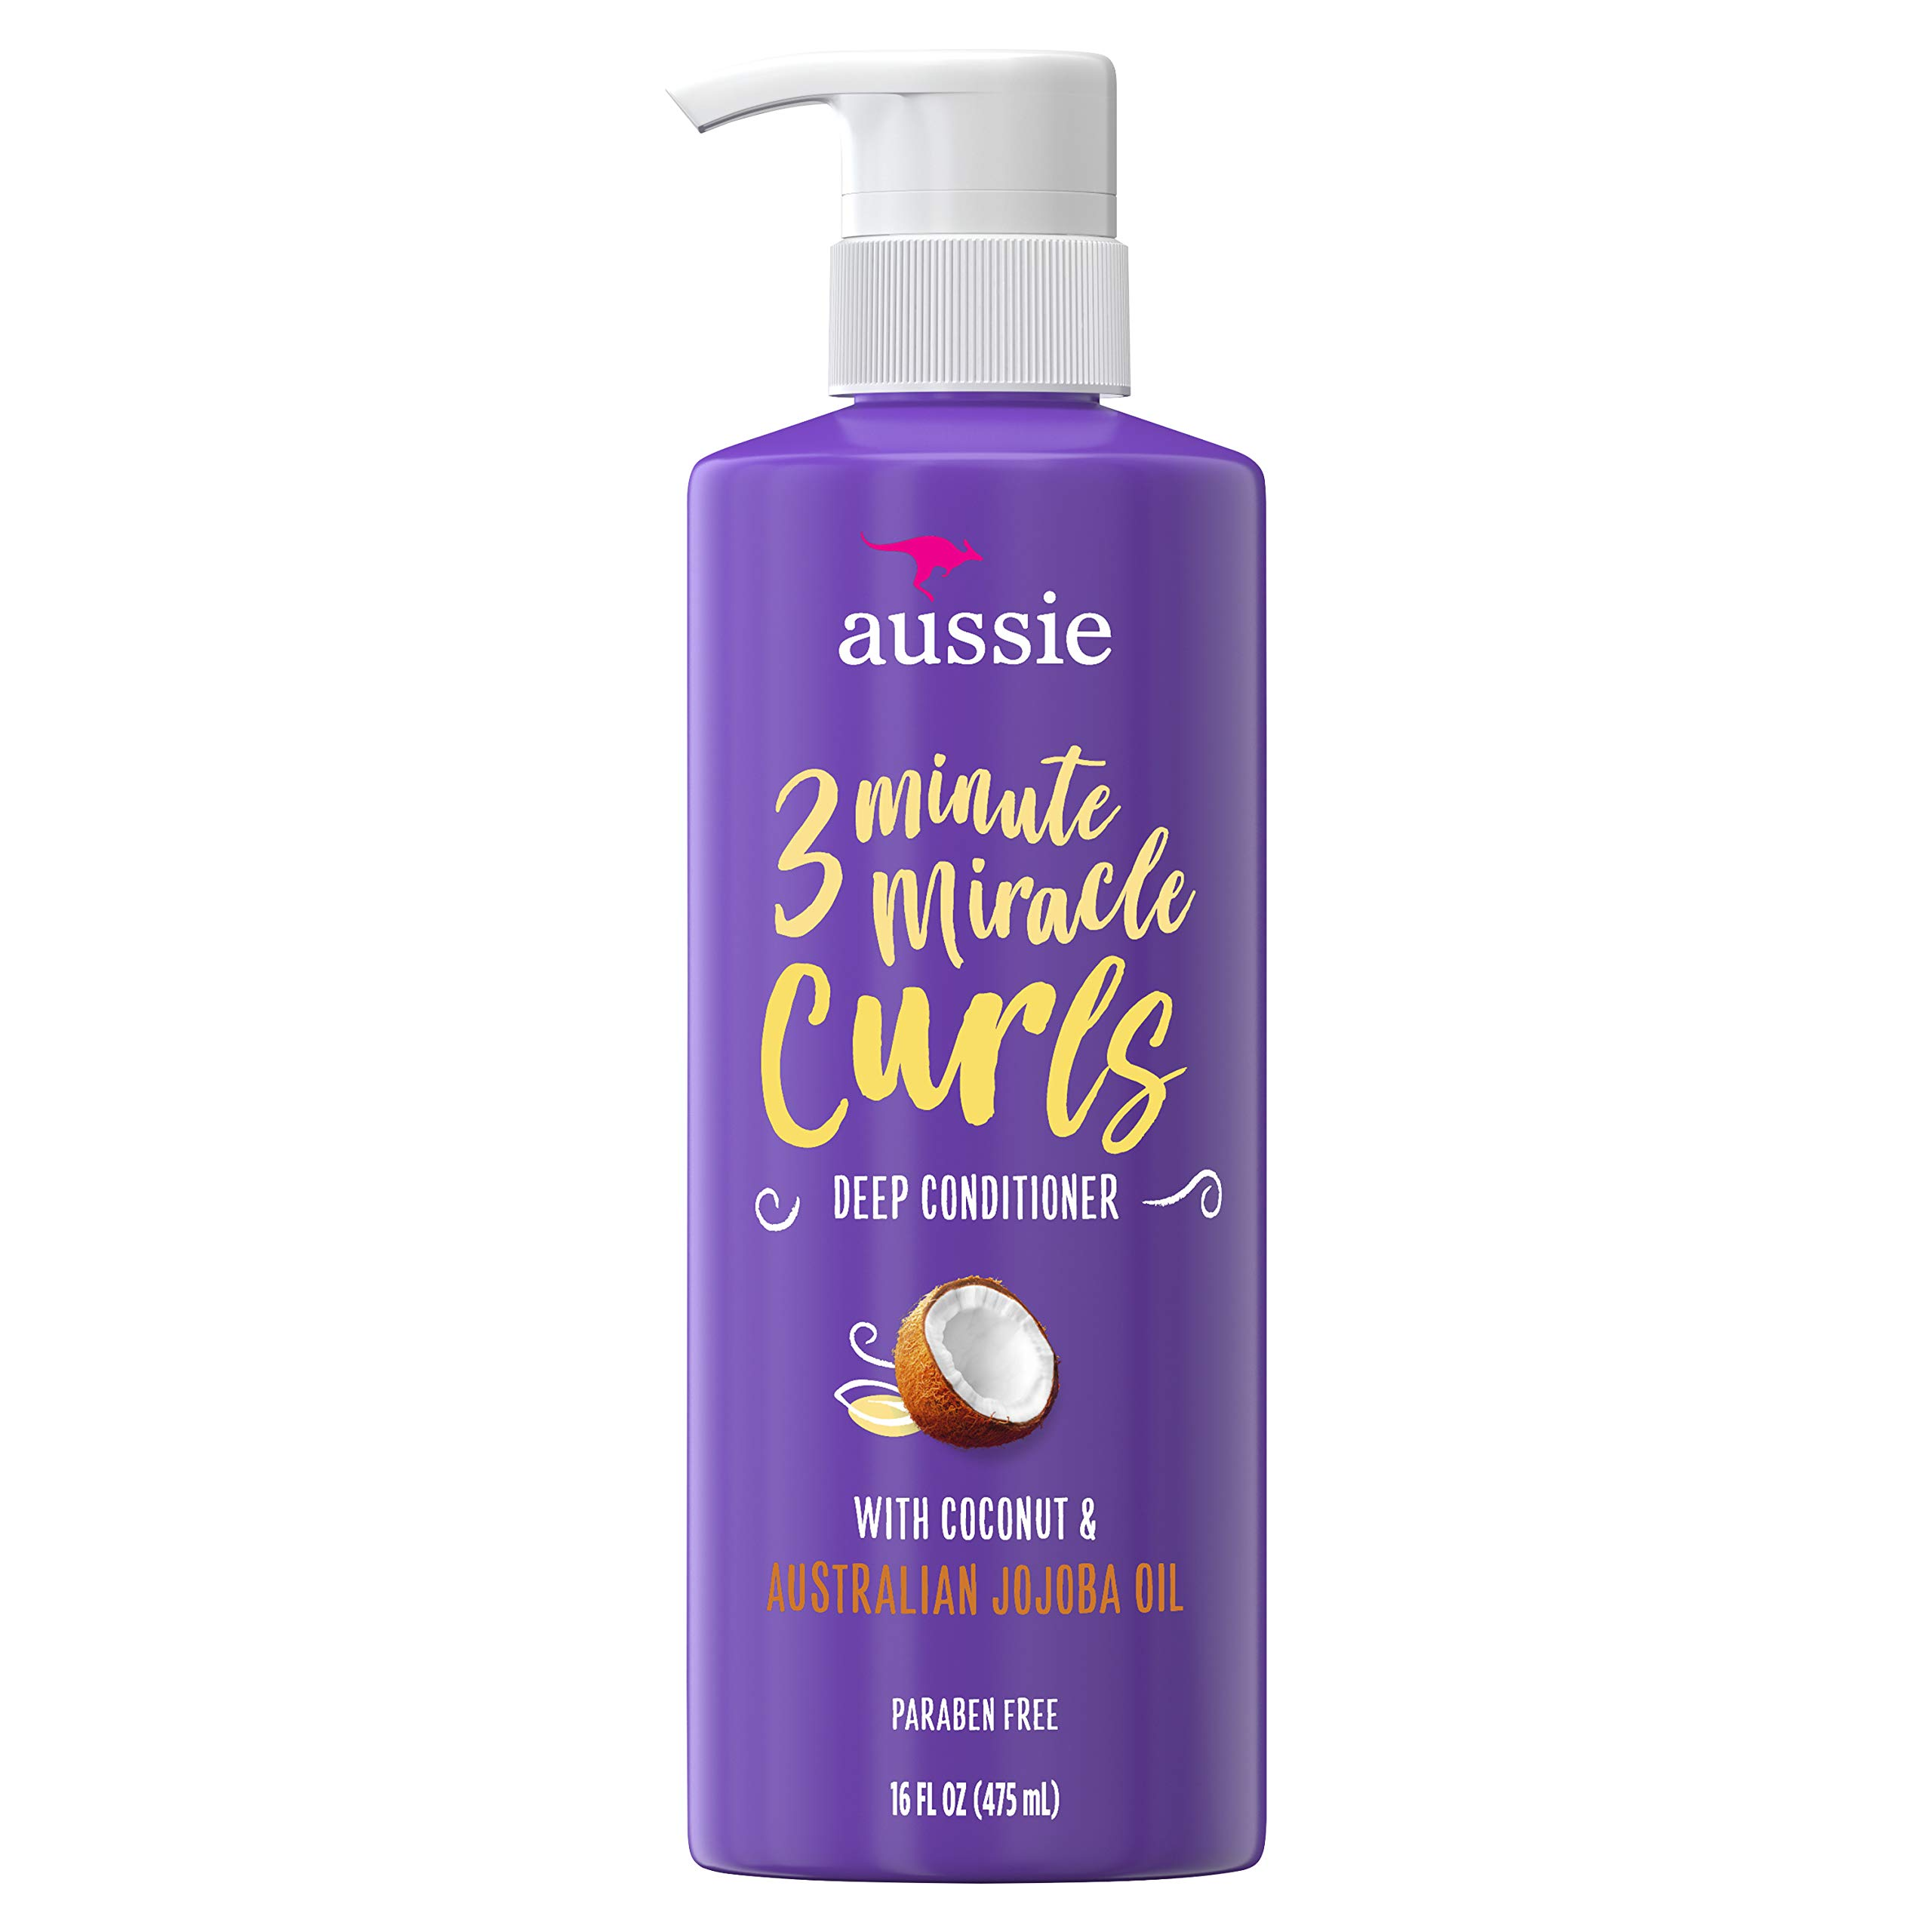 Aussie 3 Minute Miracle Curls Conditioner 16 Ounce Pump (475ml), SG_B079DGGVJ6_US